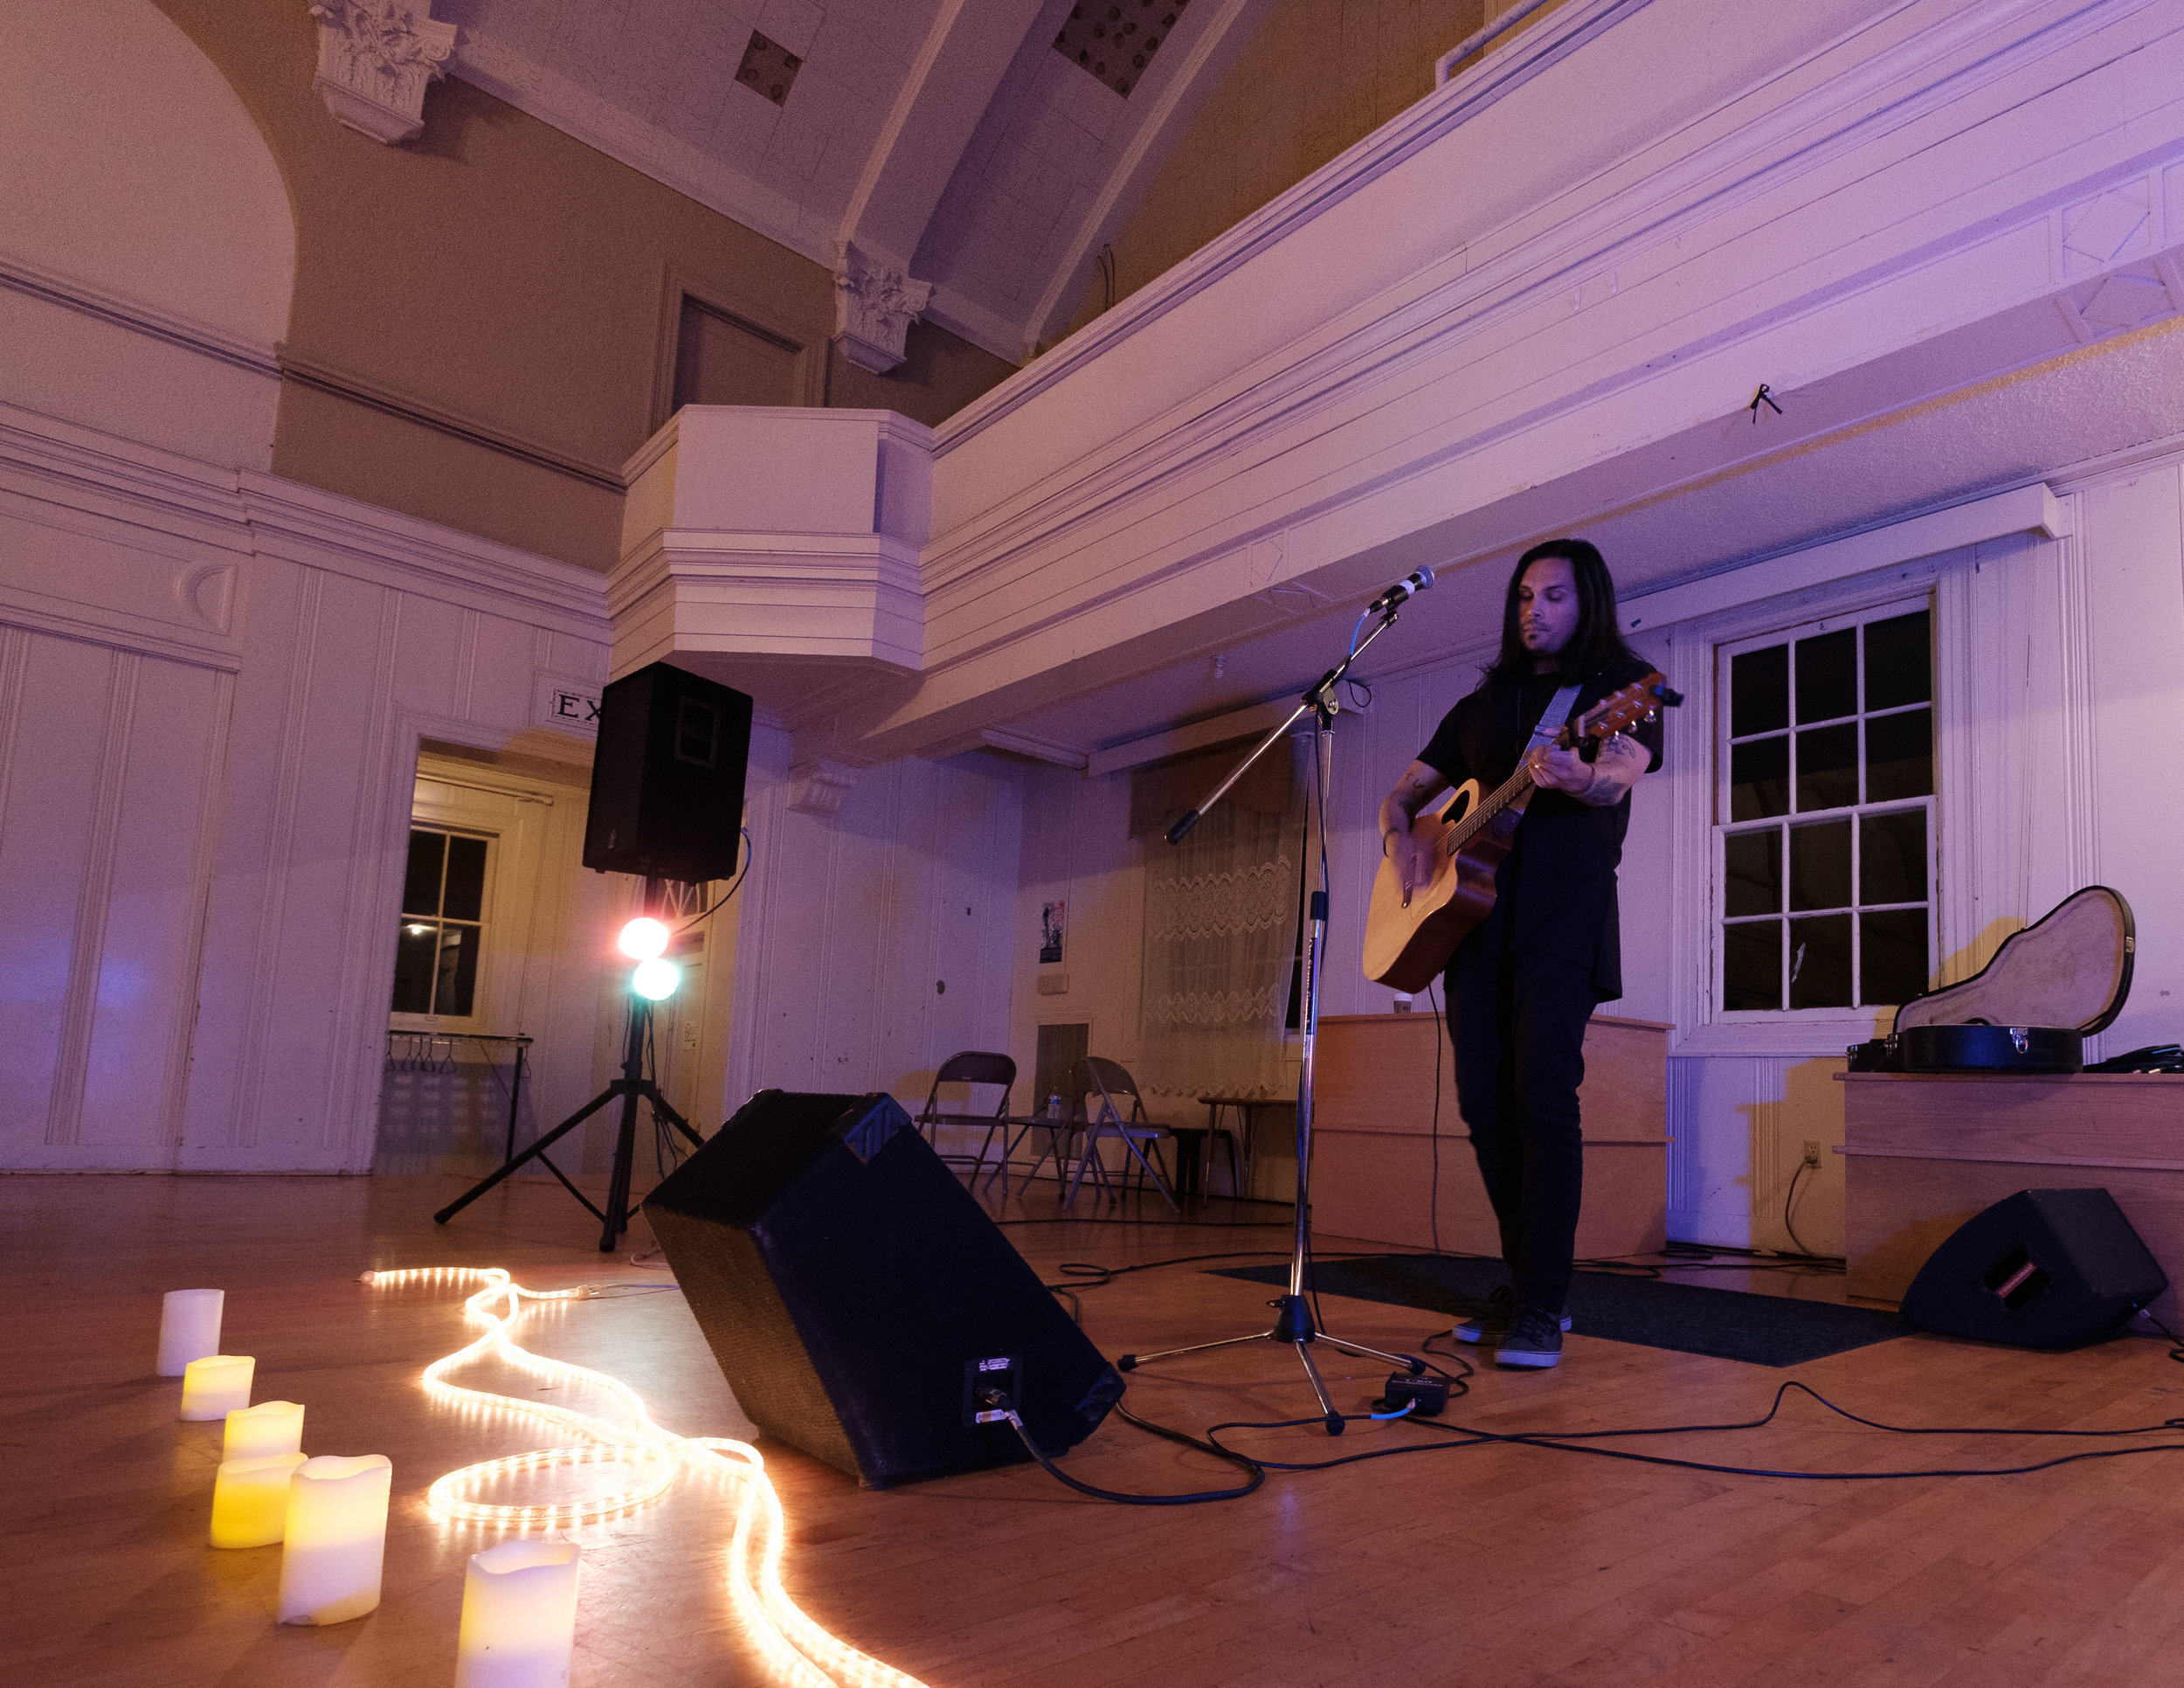 Arthur James, Fellowship Hall, Seattle Acoustic Festival, 26 August 2017. (If you live in the PNW, check out his schedule and get to a show. You won't regret it.)